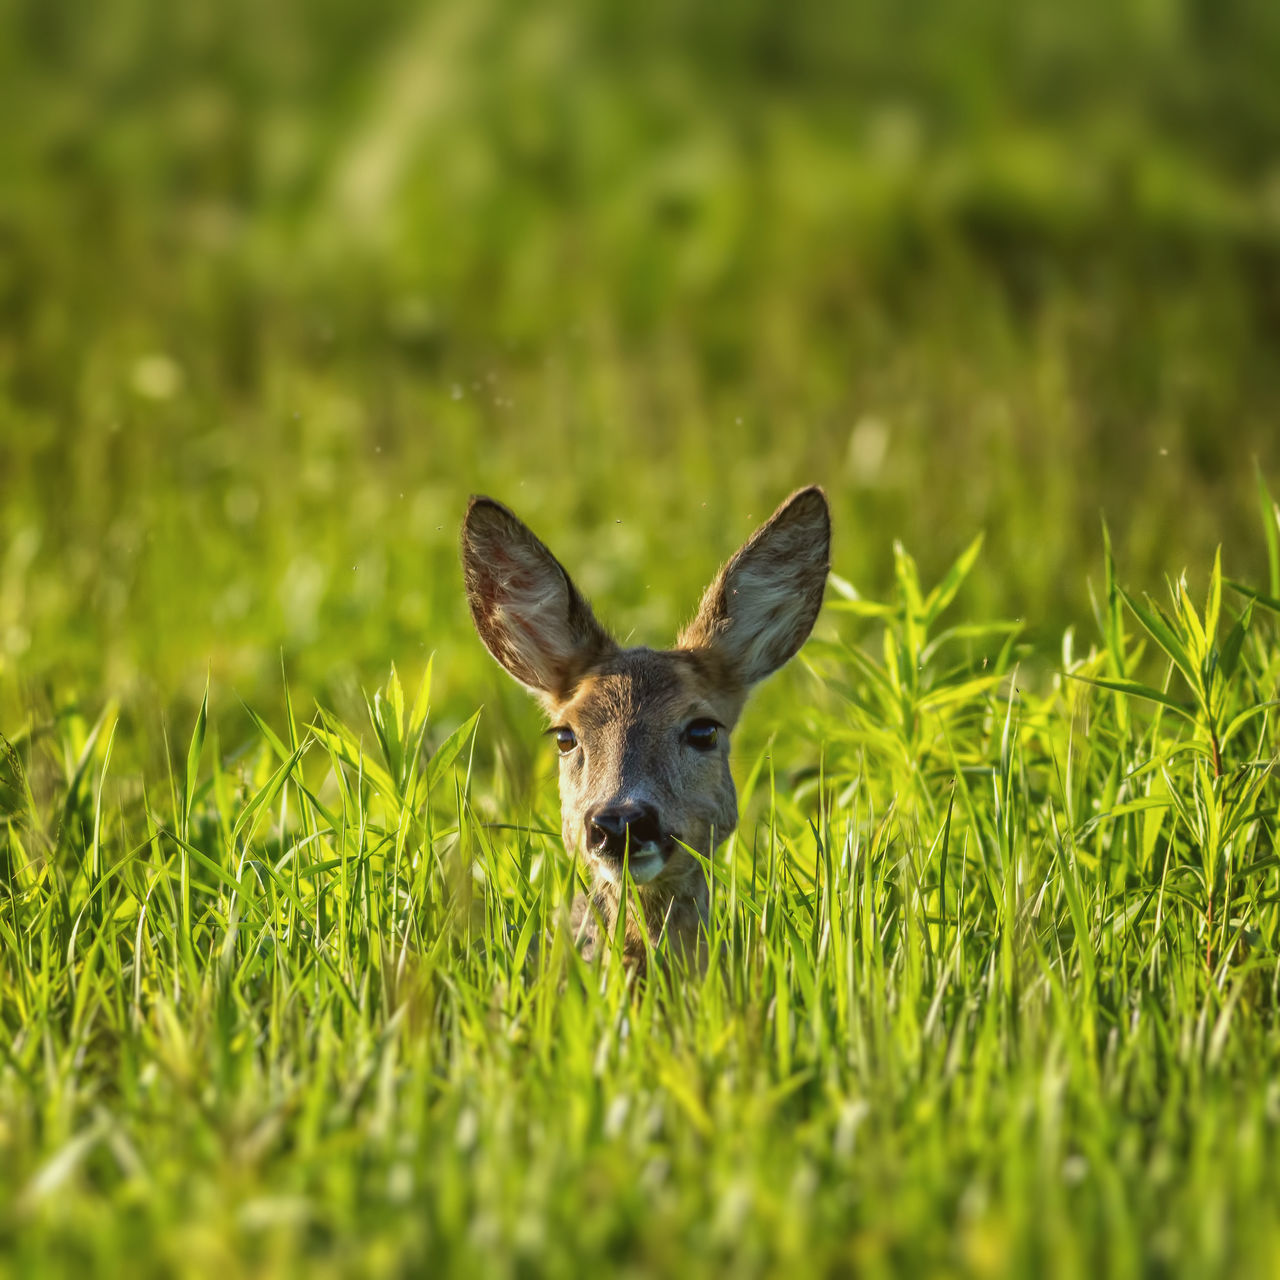 Alertness Animal Animal Wildlife Animals In The Wild Attention Brown Day Deer Ear Field Forest Grass Green Green Color Growth Mammal Mammals Meadow Nature Nature No People One Animal Outdoors Roe Deer